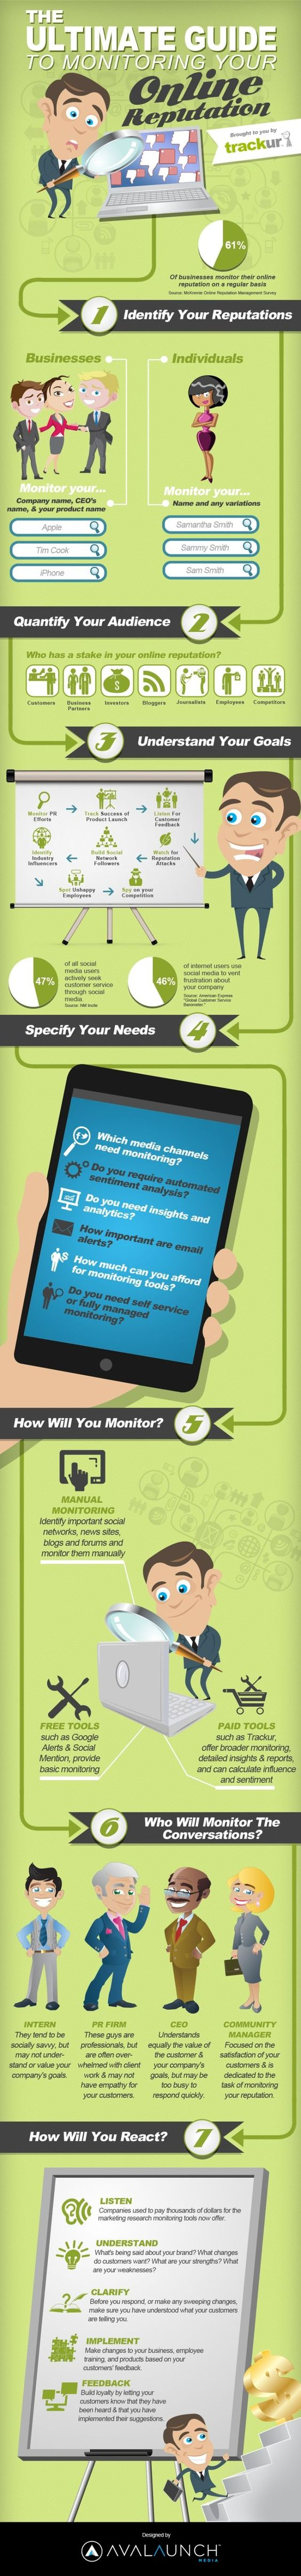 The Ultimate Guide To Monitoring Your Online Reputation #infographic #smm #socialmedia #fb #in #onlinereputation